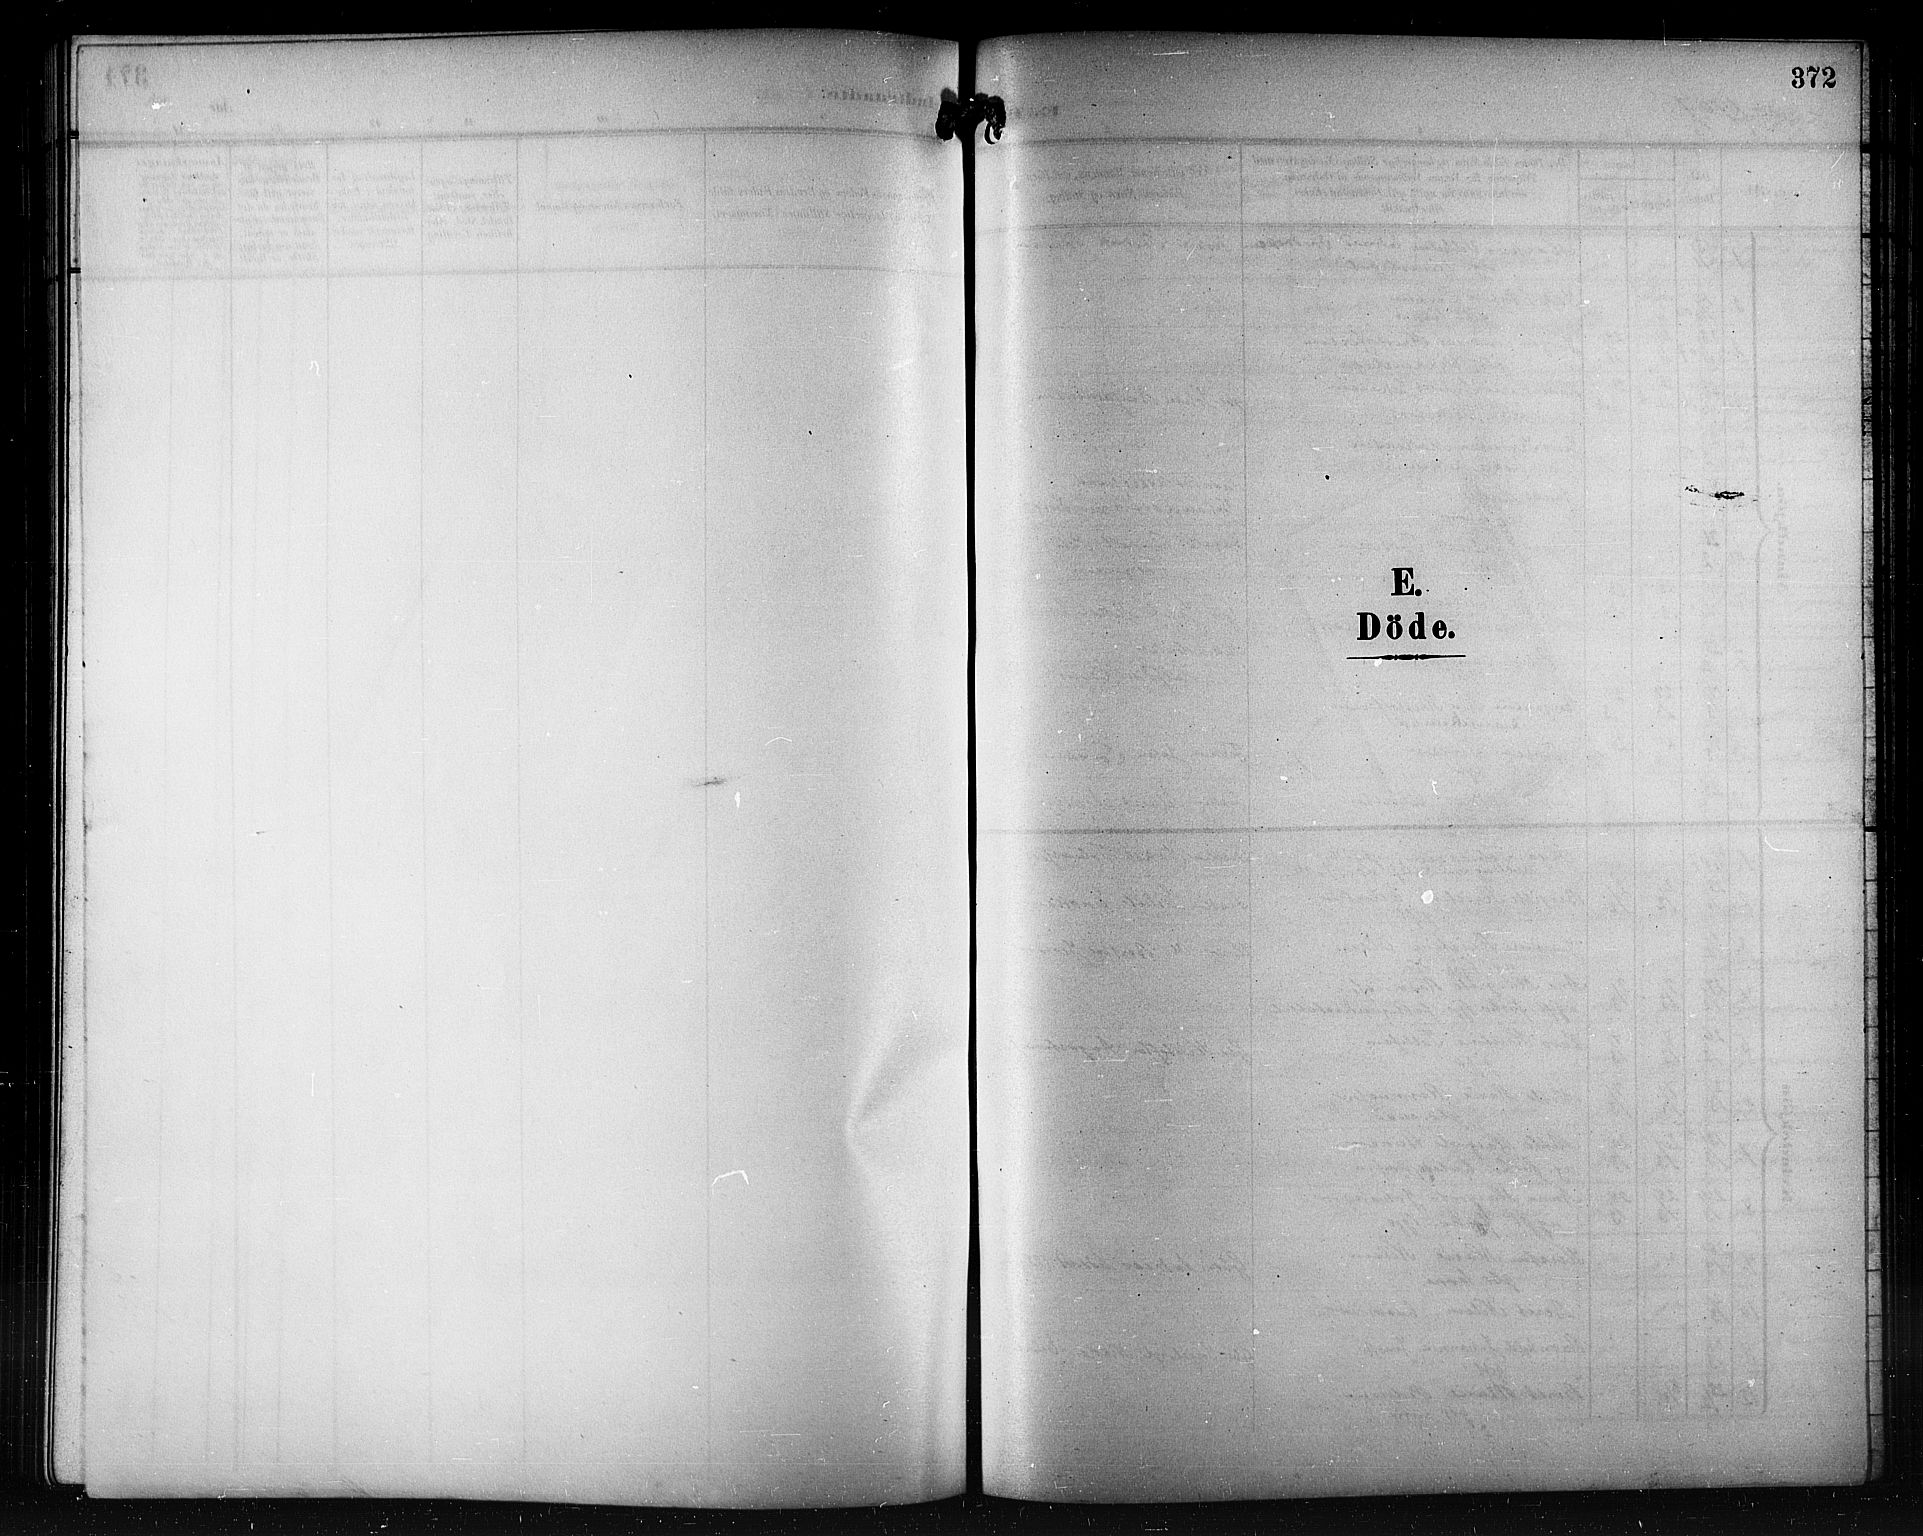 SATØ, Trondenes sokneprestkontor, H/Hb/L0012klokker: Parish register (copy) no. 12, 1907-1916, p. 372